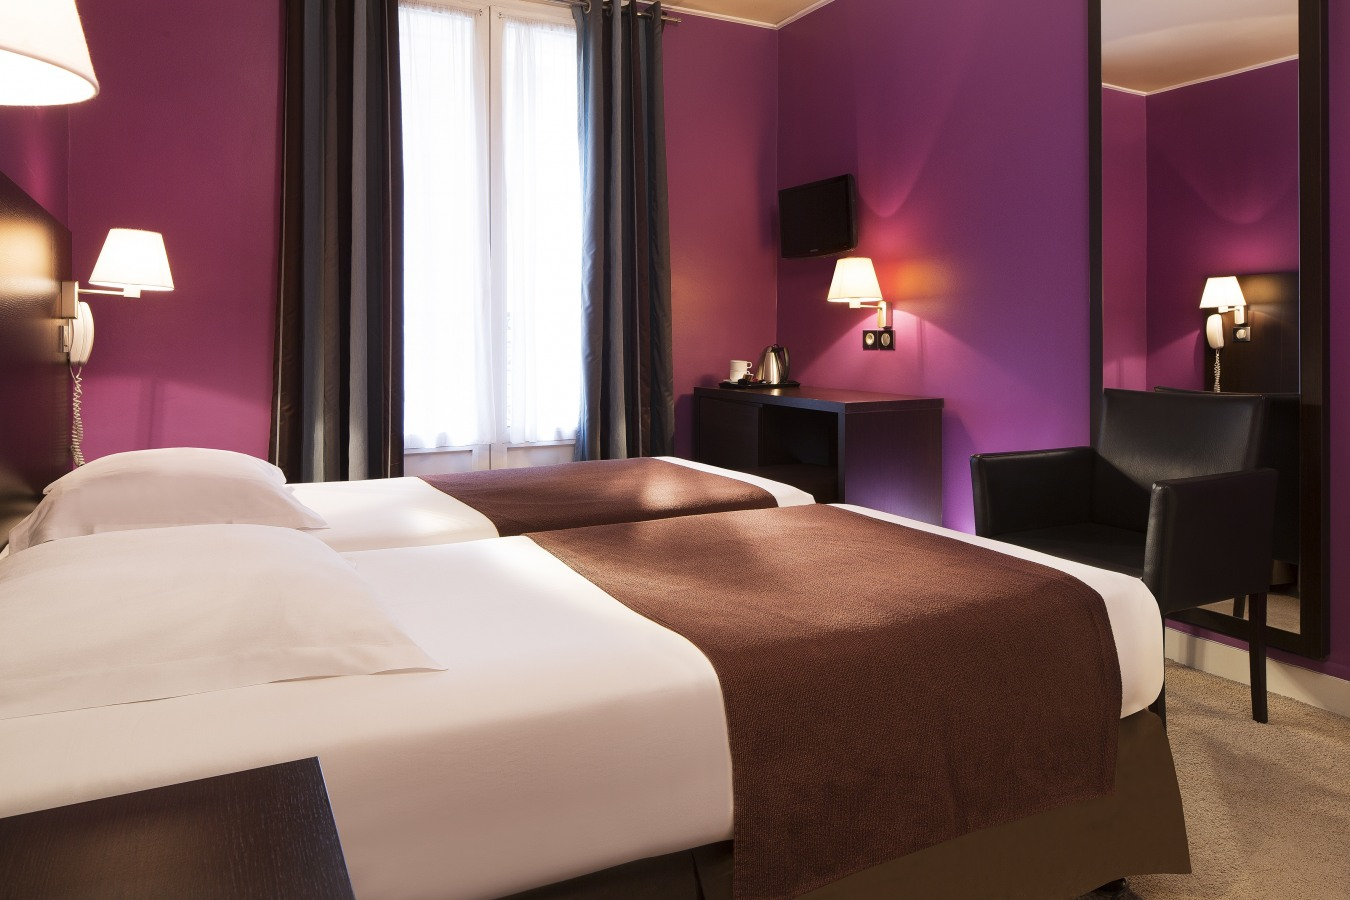 Hotel Sophie Germain - Offres Exclusives